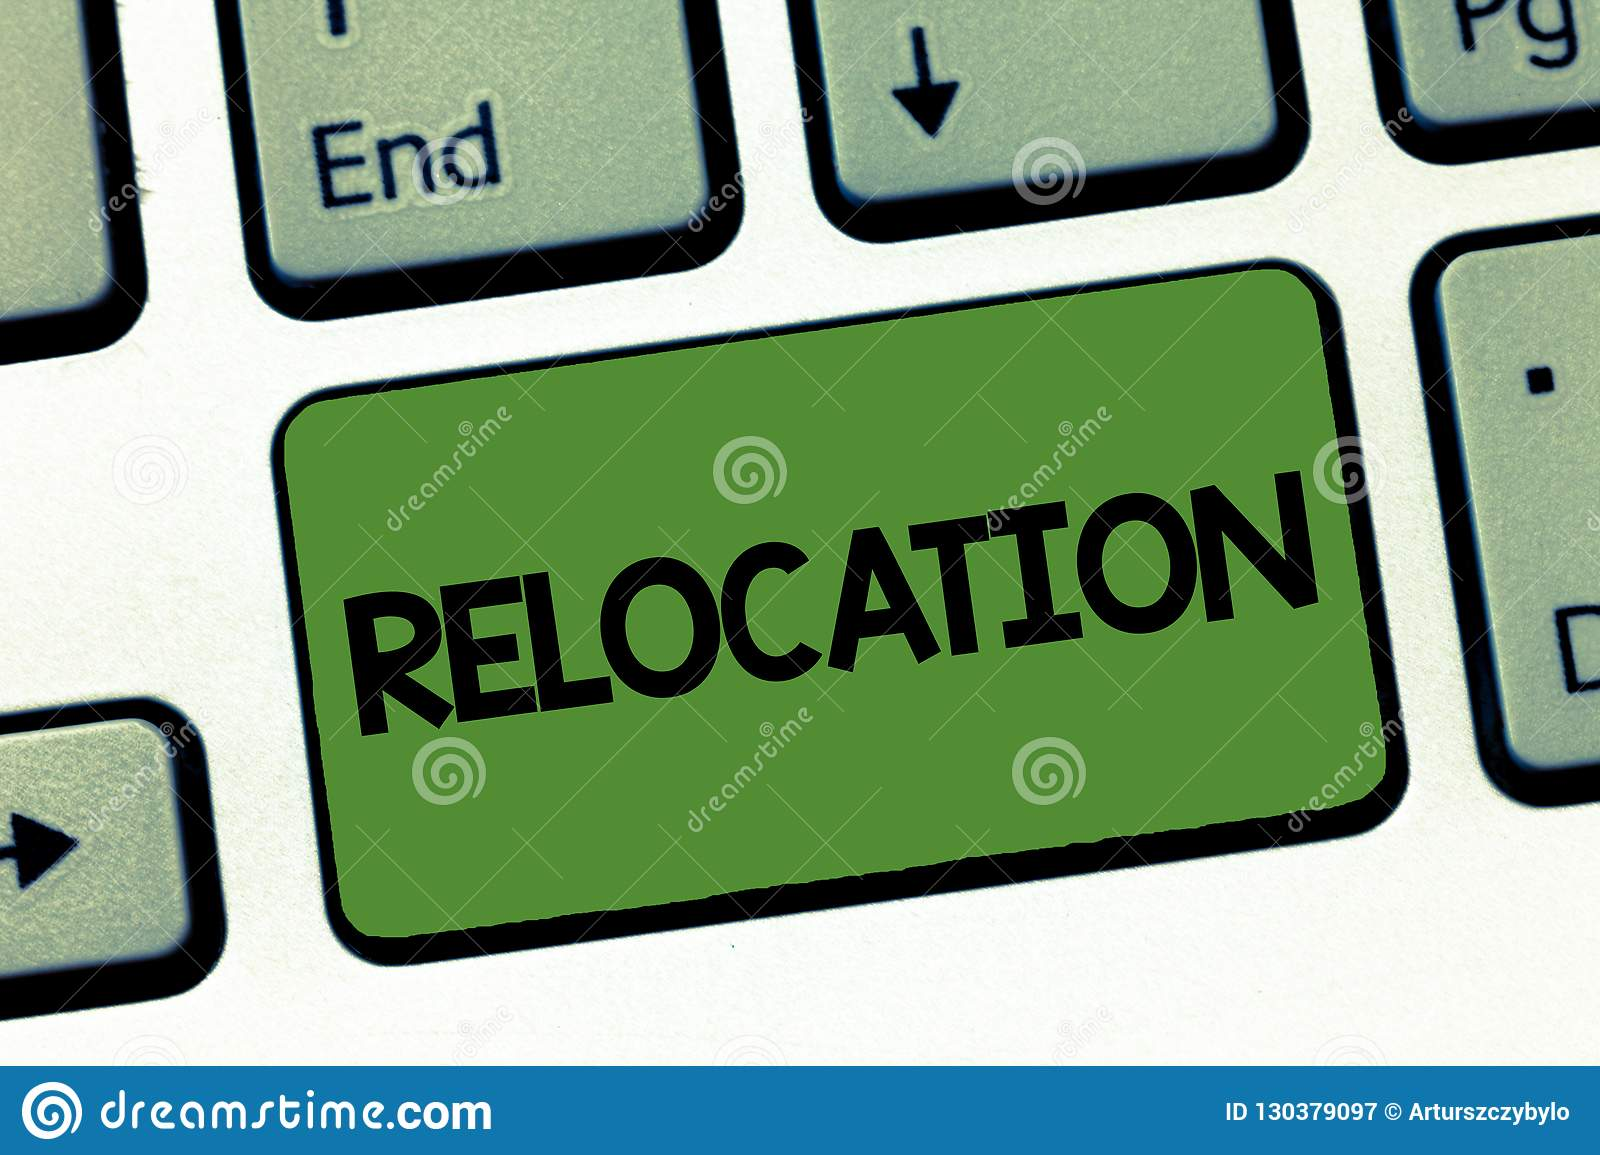 Text sign showing Relocation. Conceptual photo Action of moving to a new place and establishing home or business